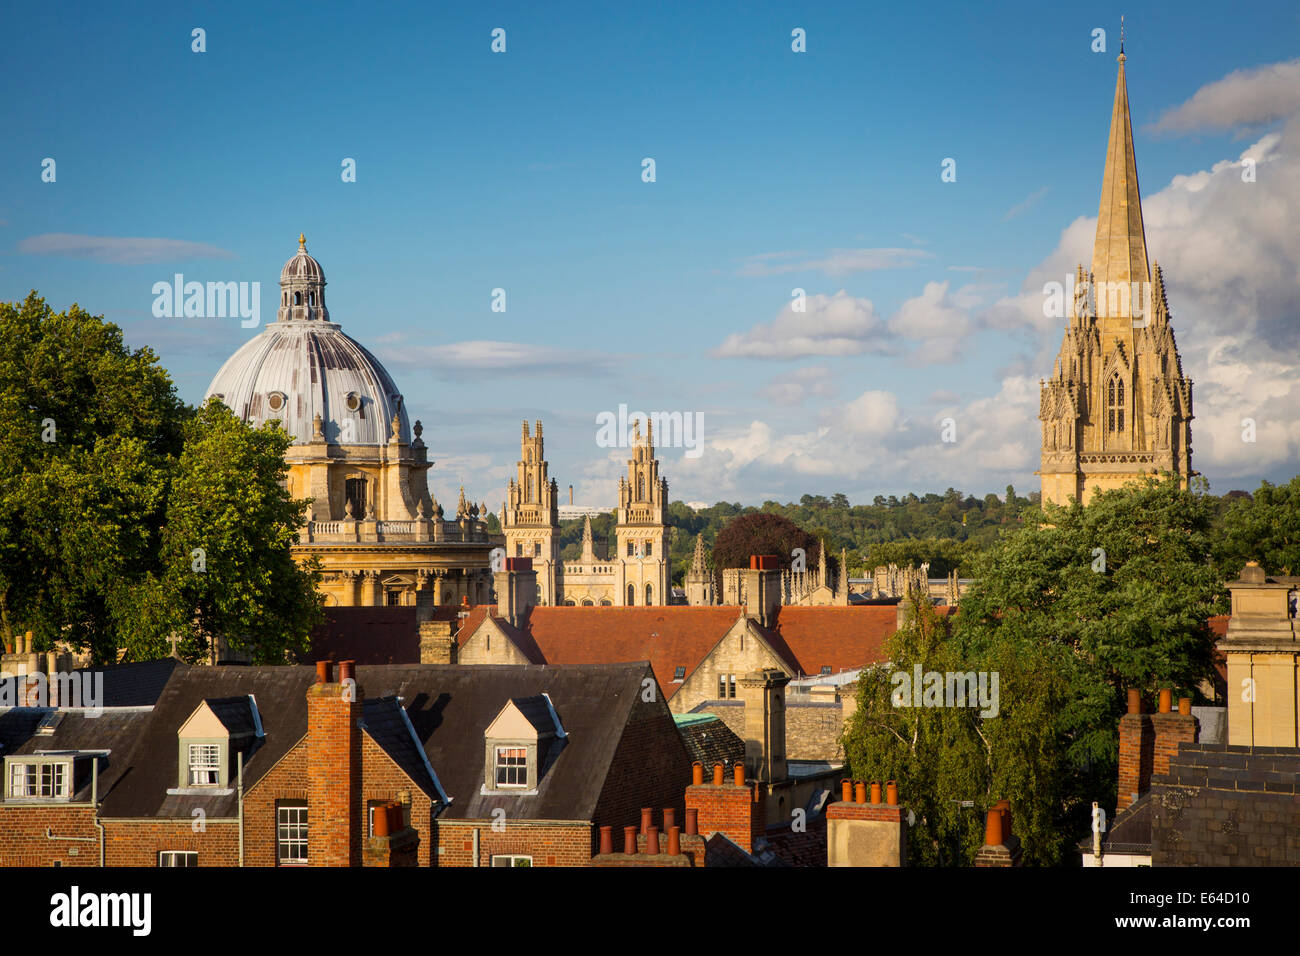 View over Oxford with the Radcliffe Camera, All Souls College and tower of St Mary's Church, Oxfordshire, England - Stock Image